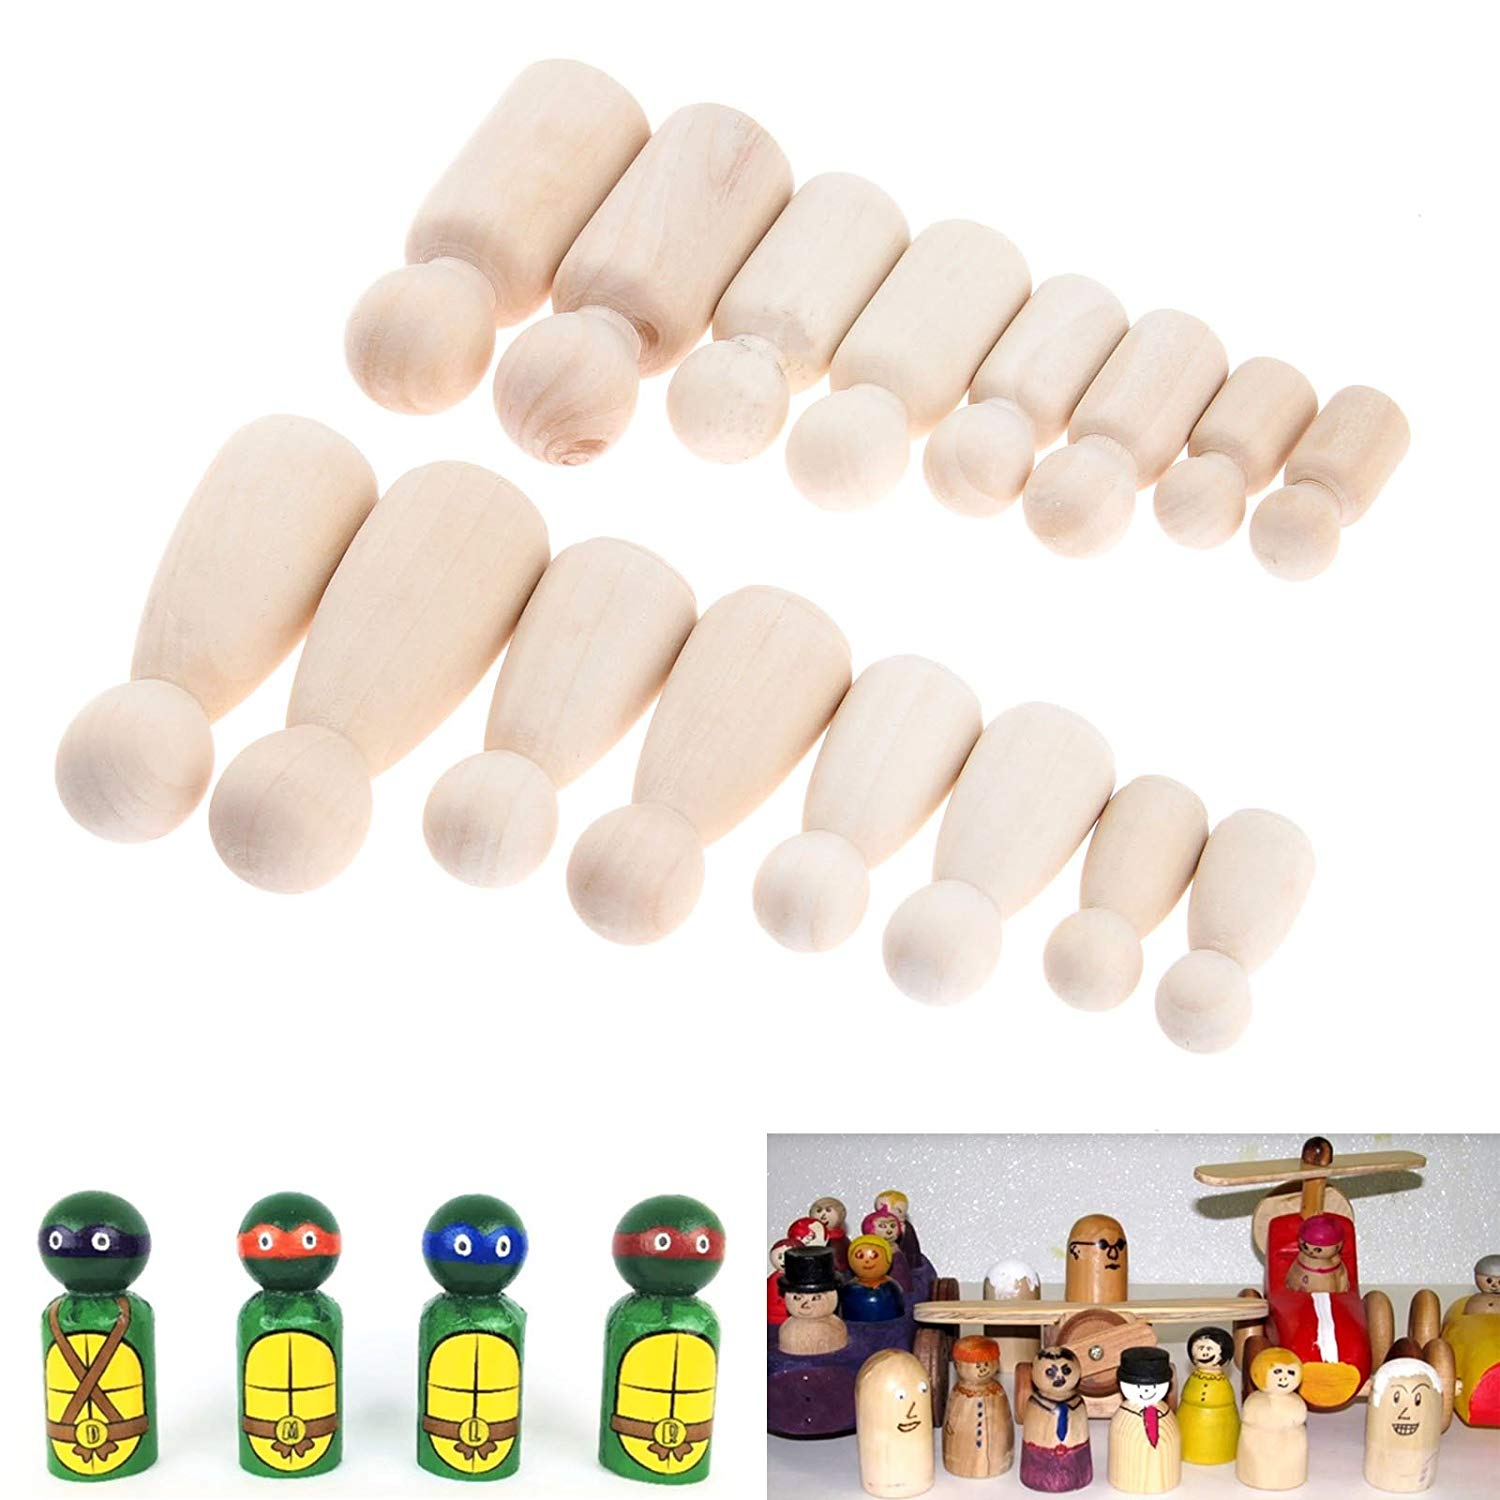 16 PcsSolid Hard Wood People Different Size Natural Unfinished Ramp Preparation Paint Or Stained Wooden Family Wood Peg Dolls